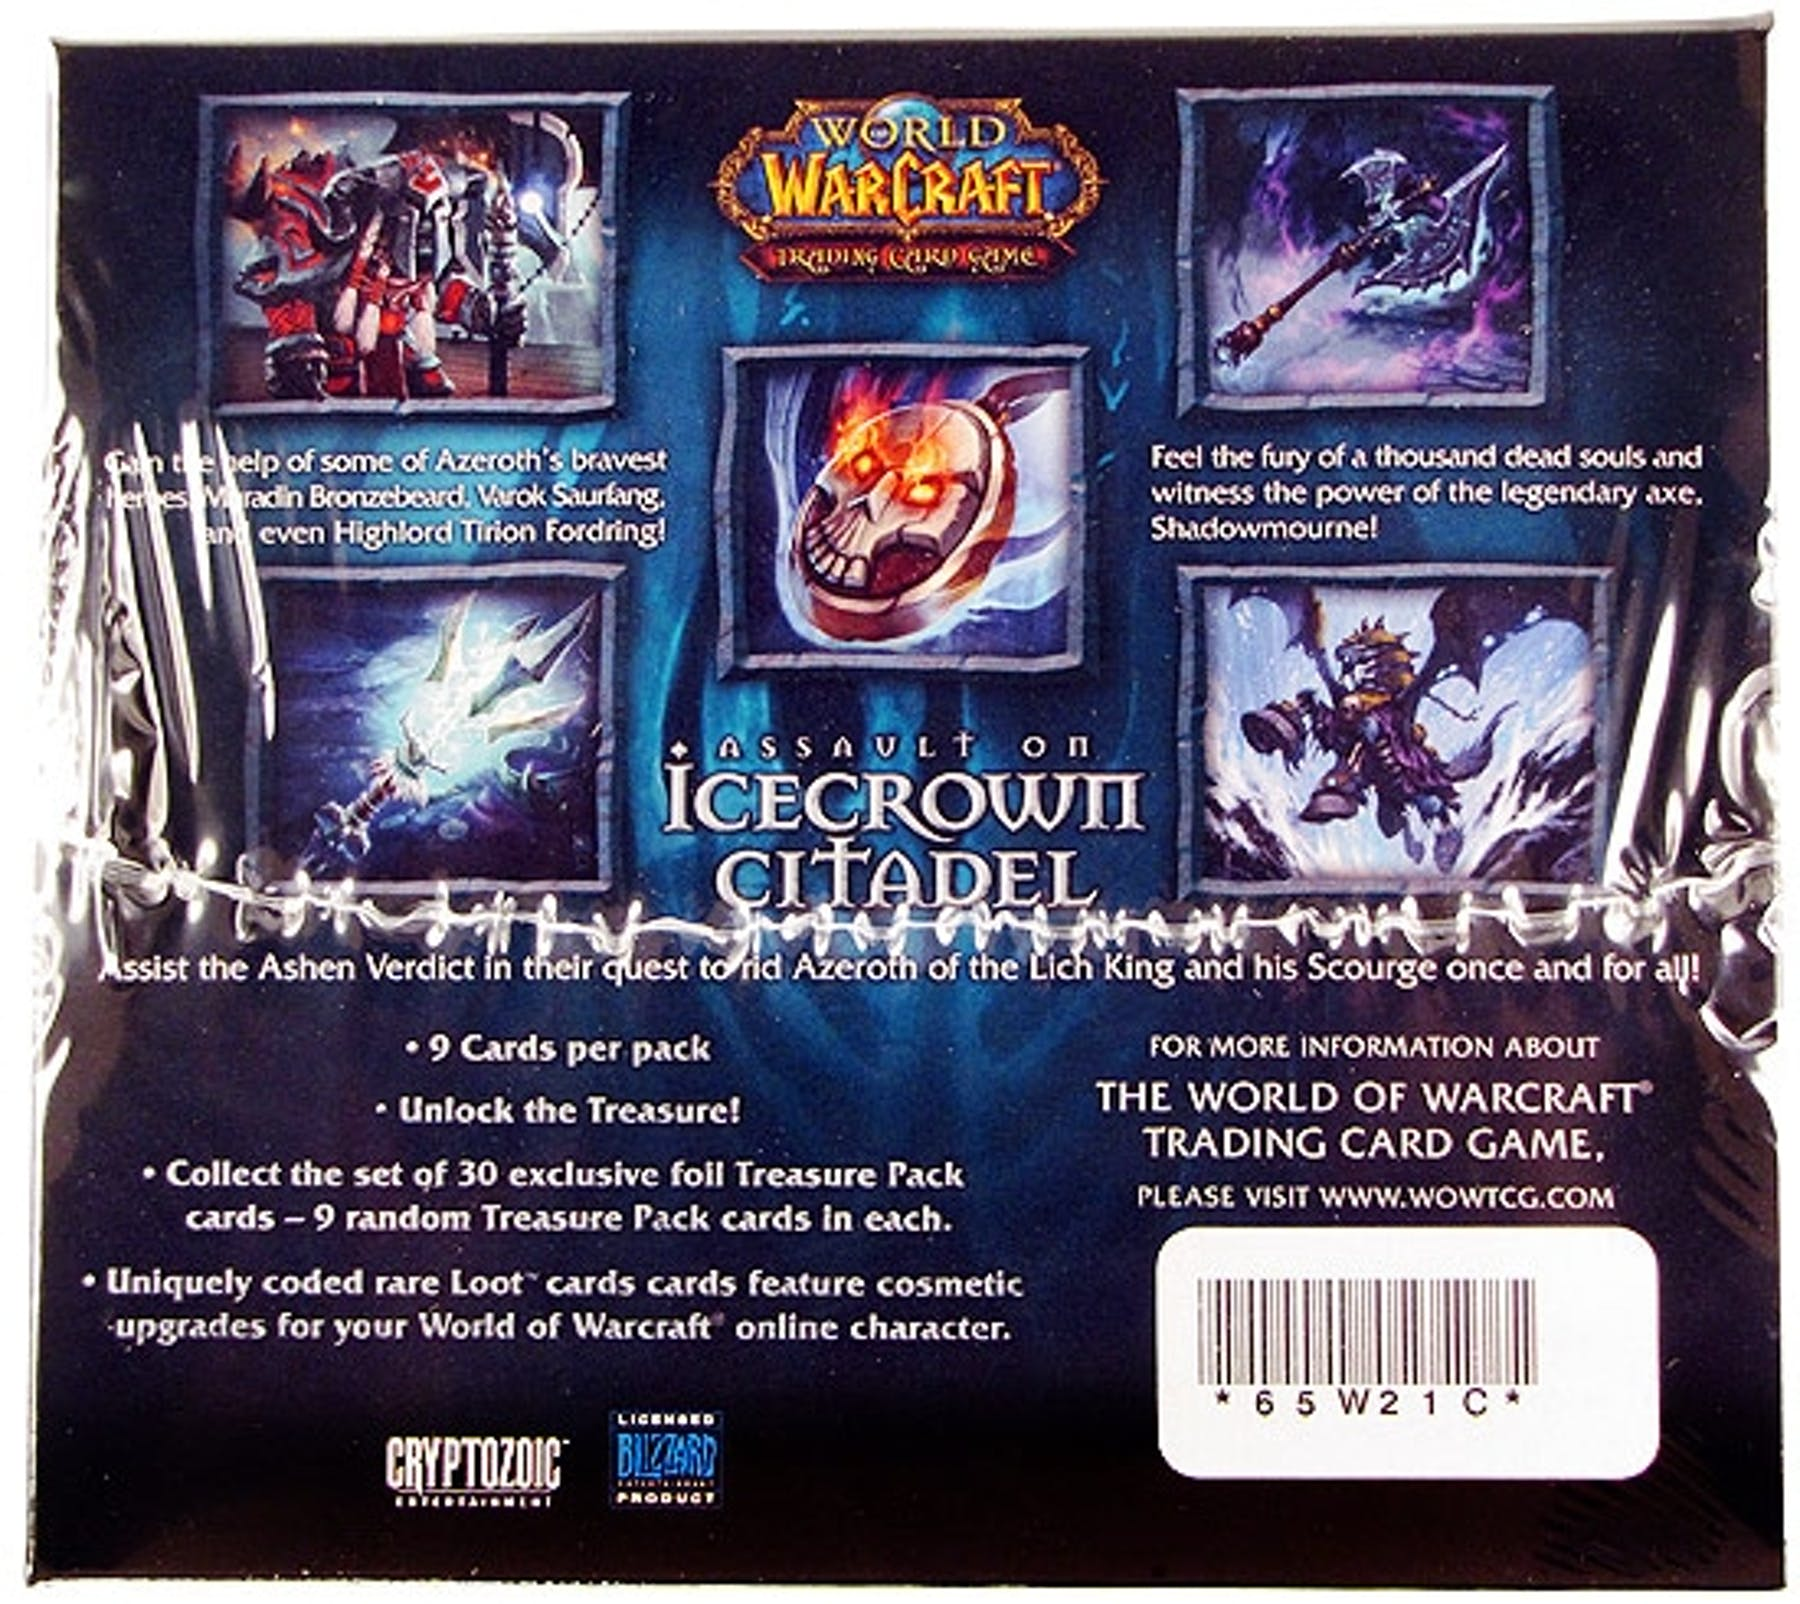 World of Warcraft Assault on Icecrown Citadel Treasure Pack Box | DA